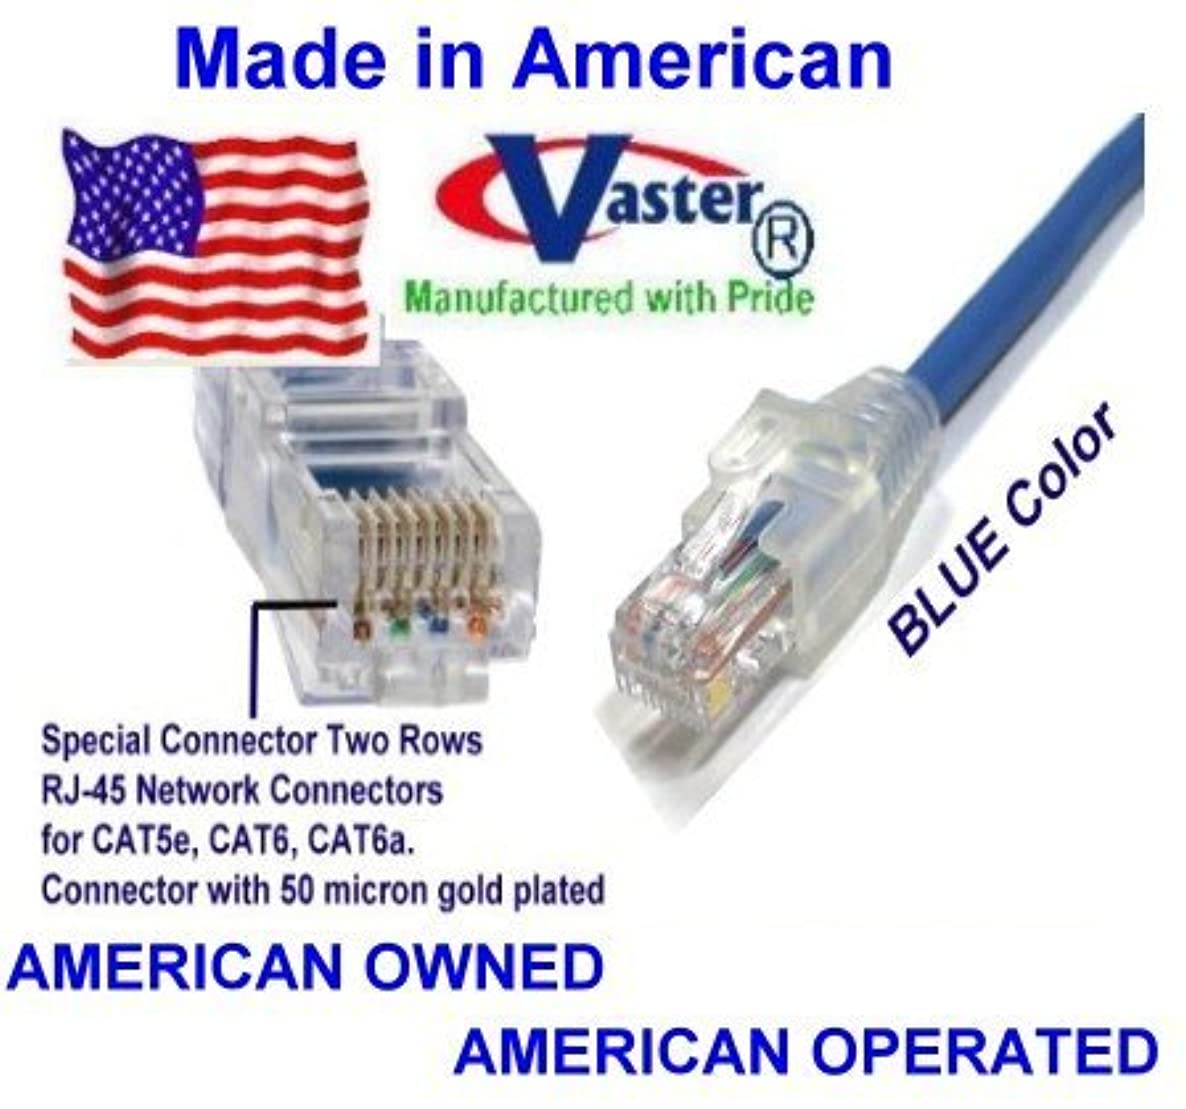 SuperEcable - USA-0670 - 24 Ft UTP Cat5e - Made in USA - BLUE – UL 24Awg Pure Copper – Ethernet Network Patch Cable